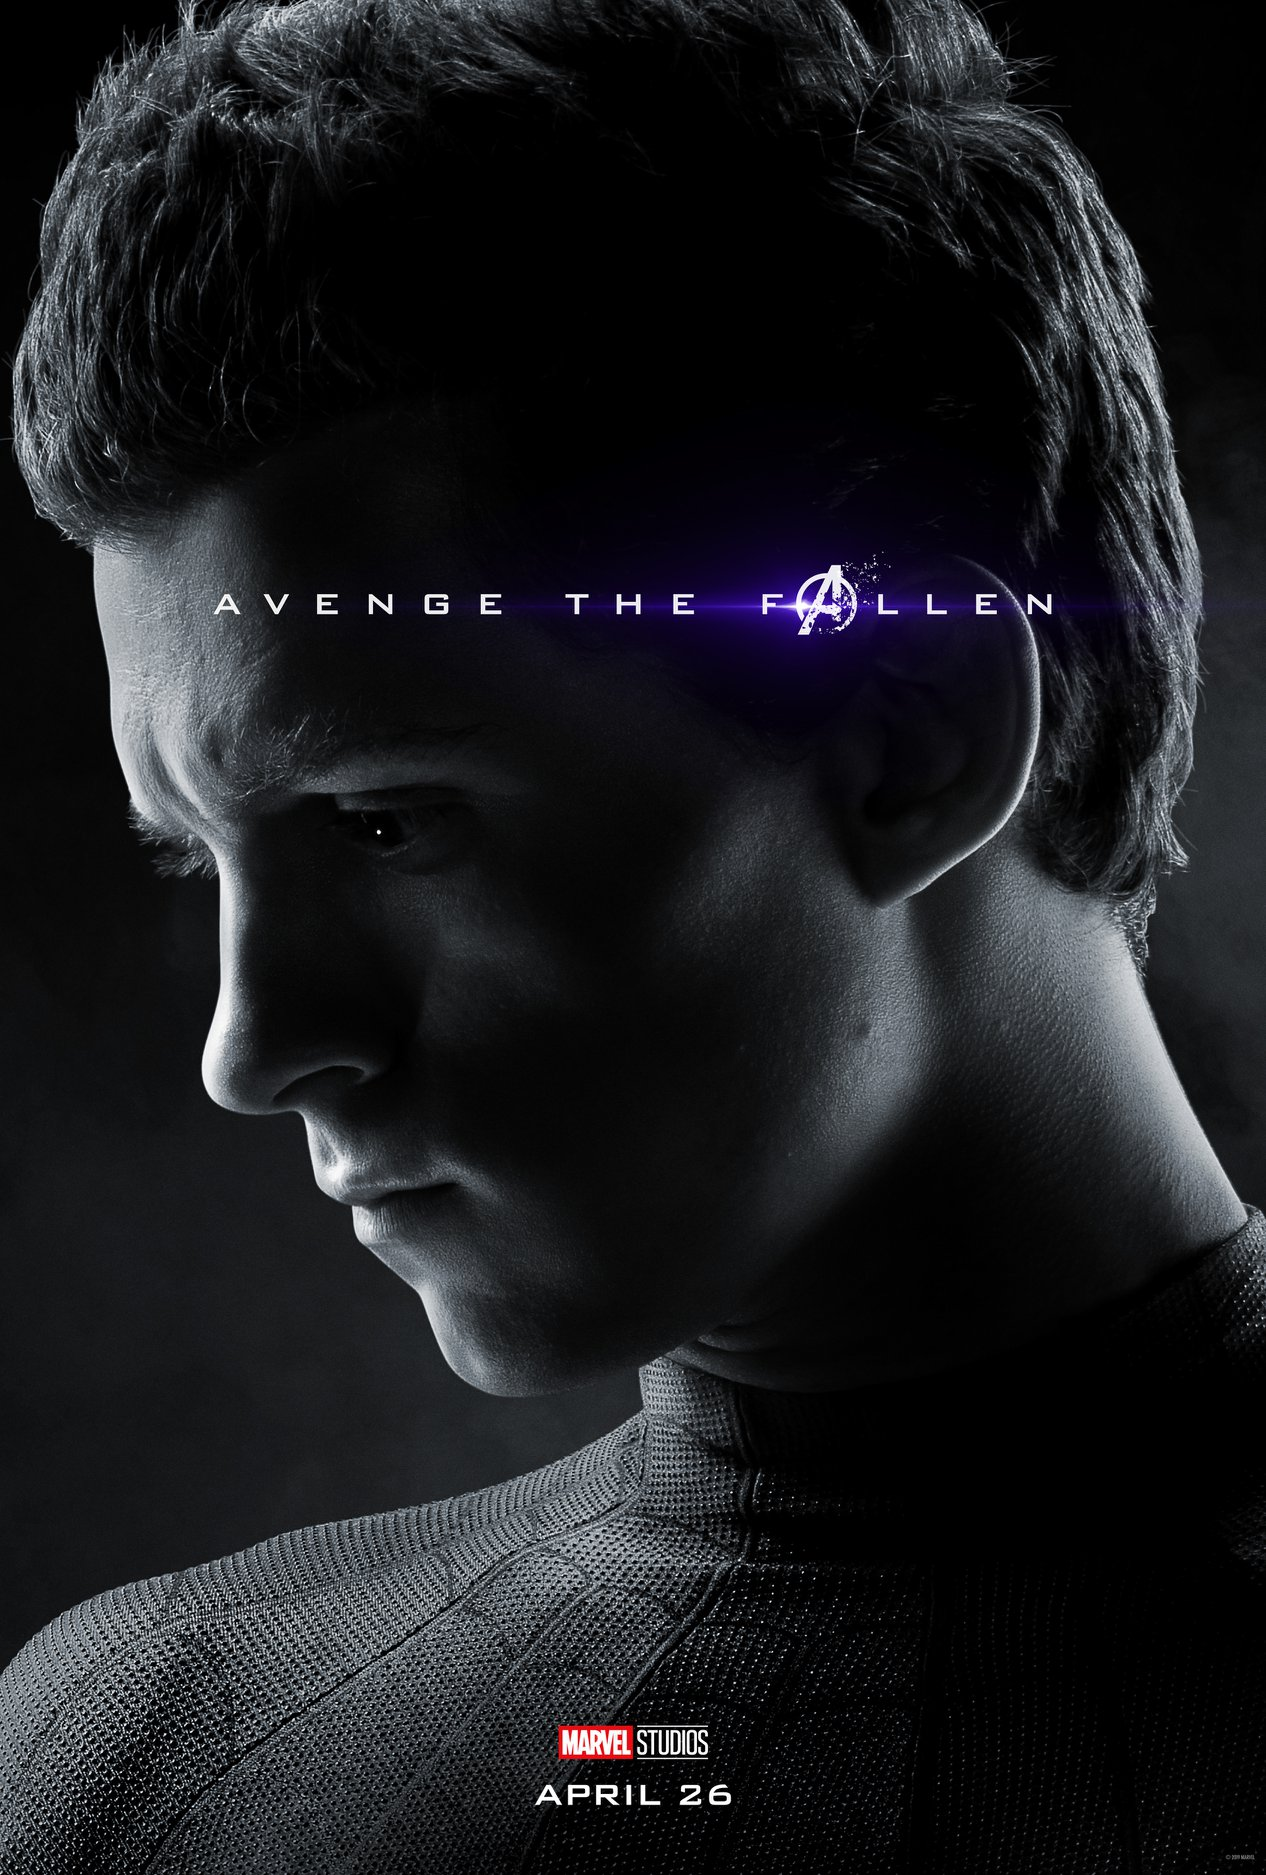 Avengers: Endgame meme pays tribute to other fallen characters - Polygon